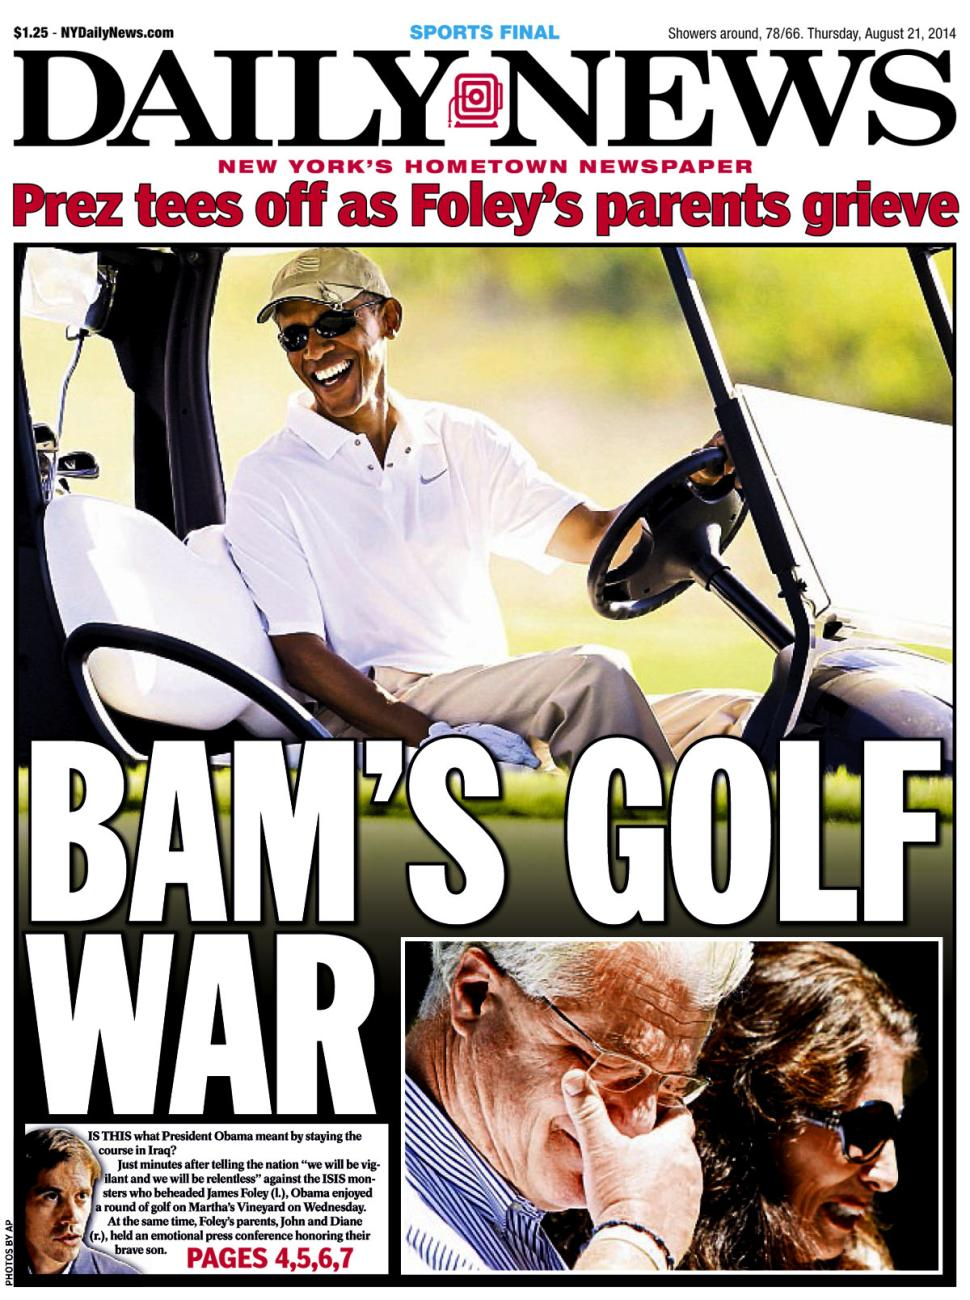 obama tees off golf